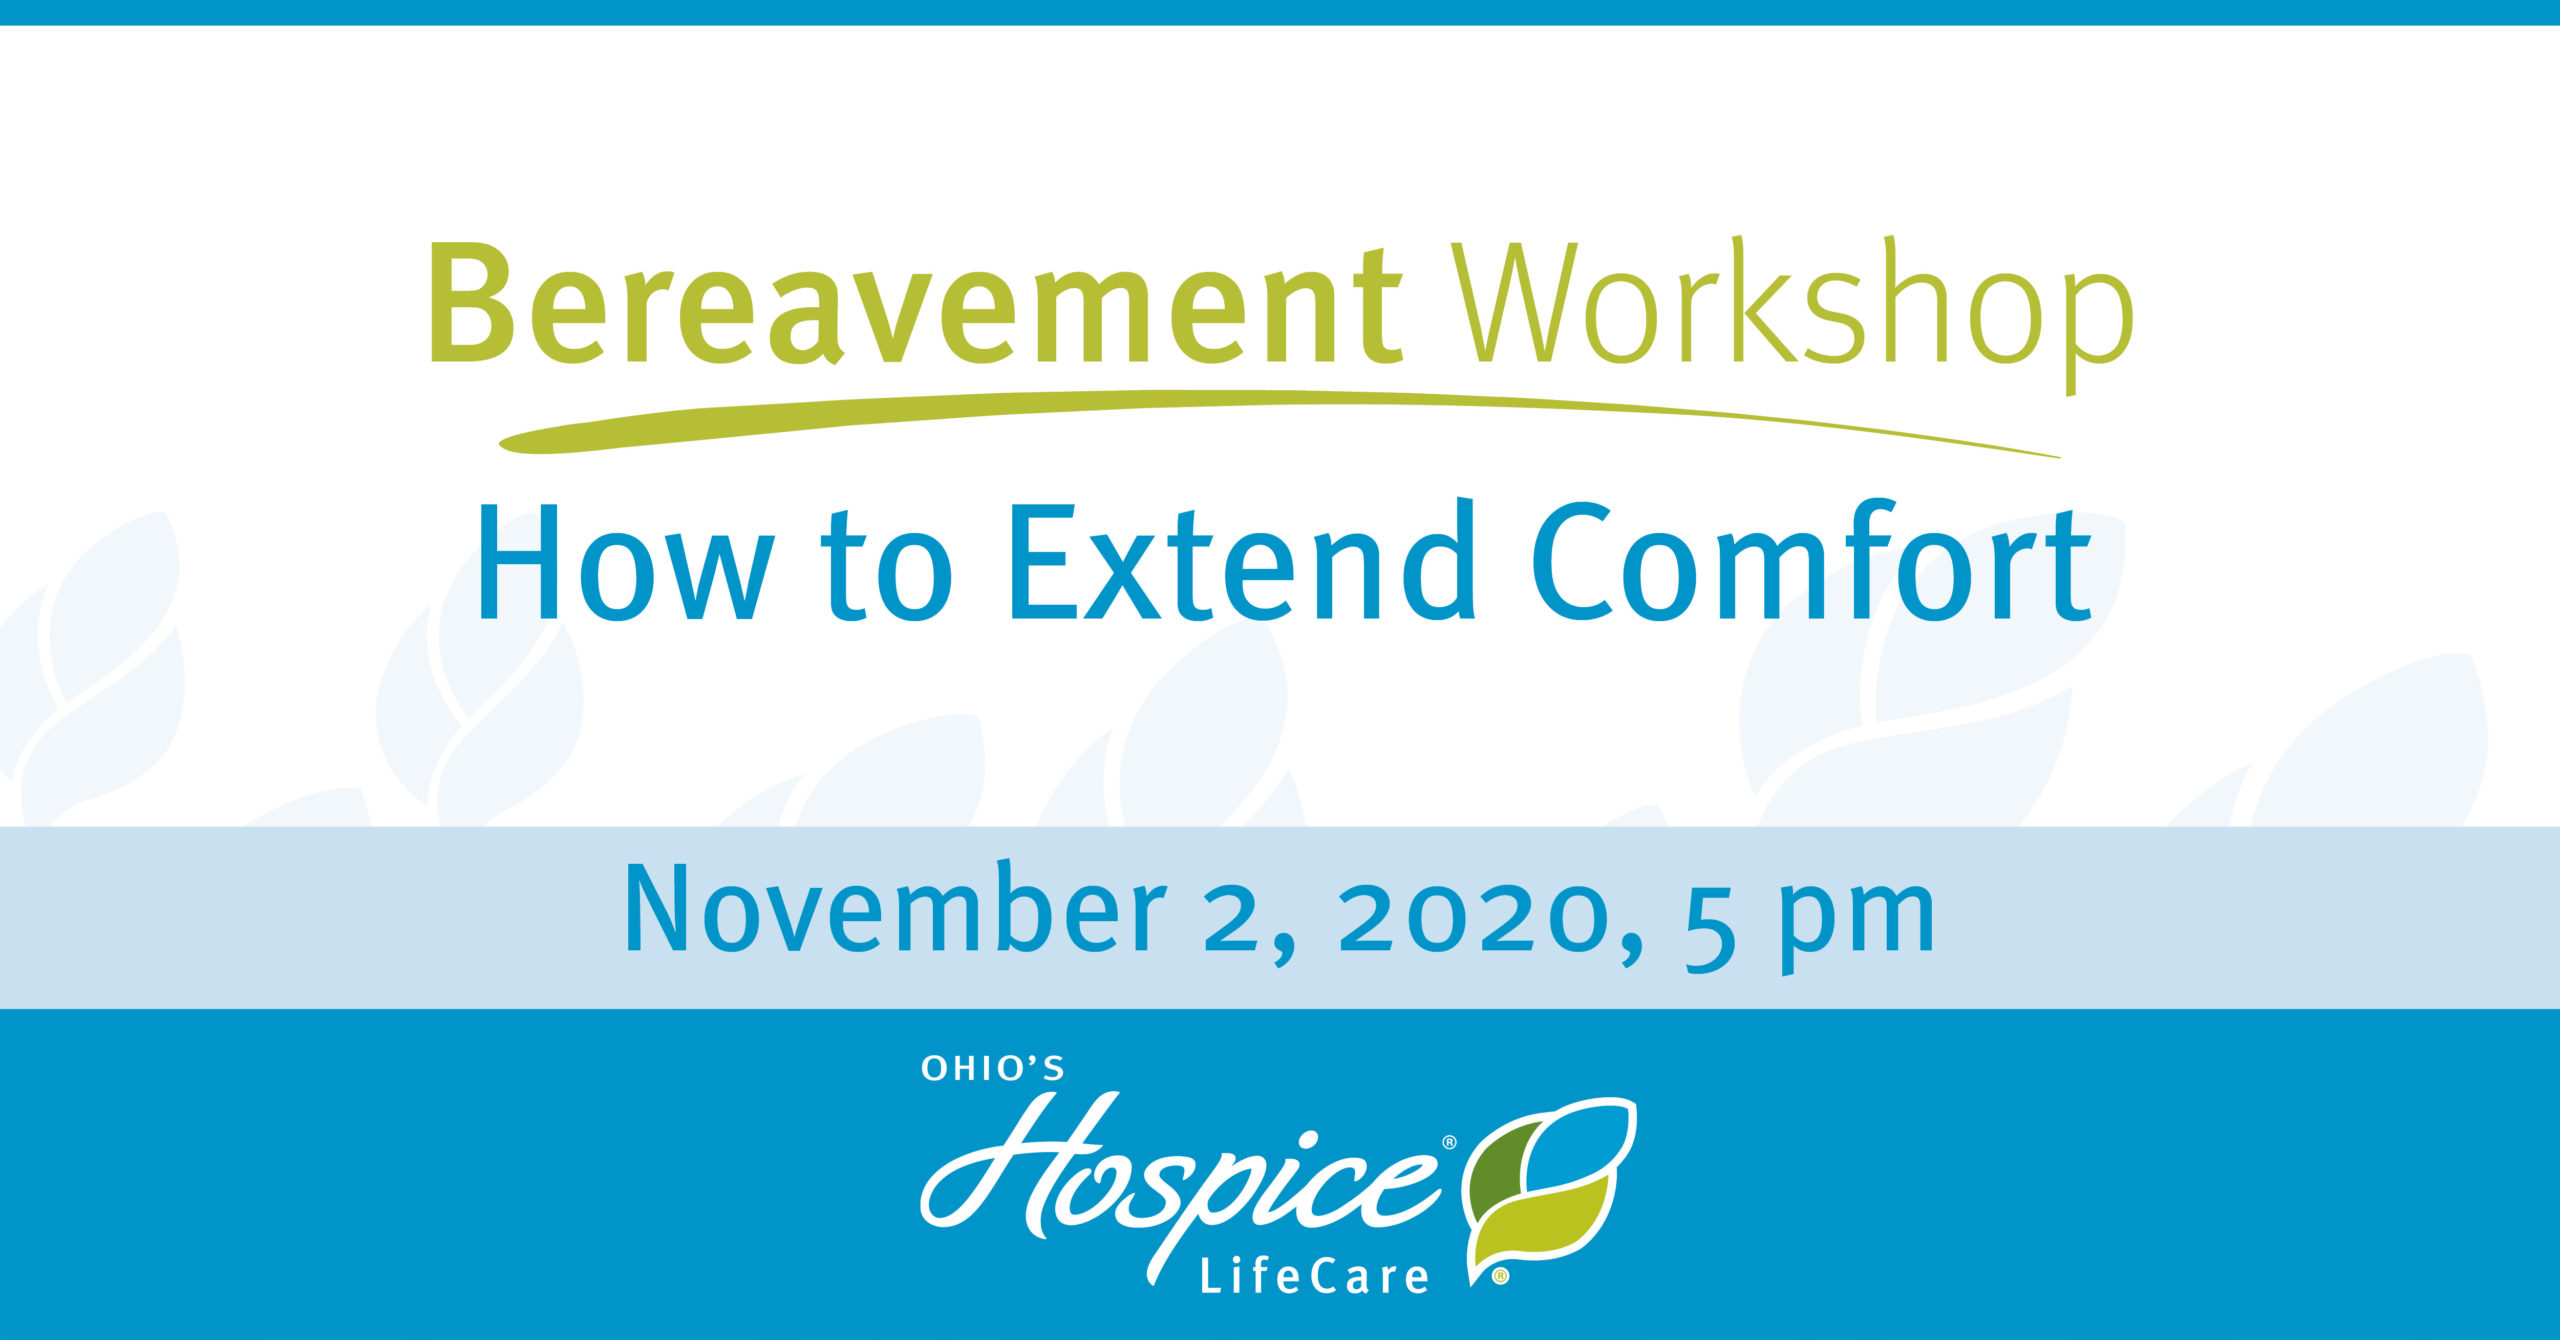 Bereavement Workshop - How To Extend Comfort